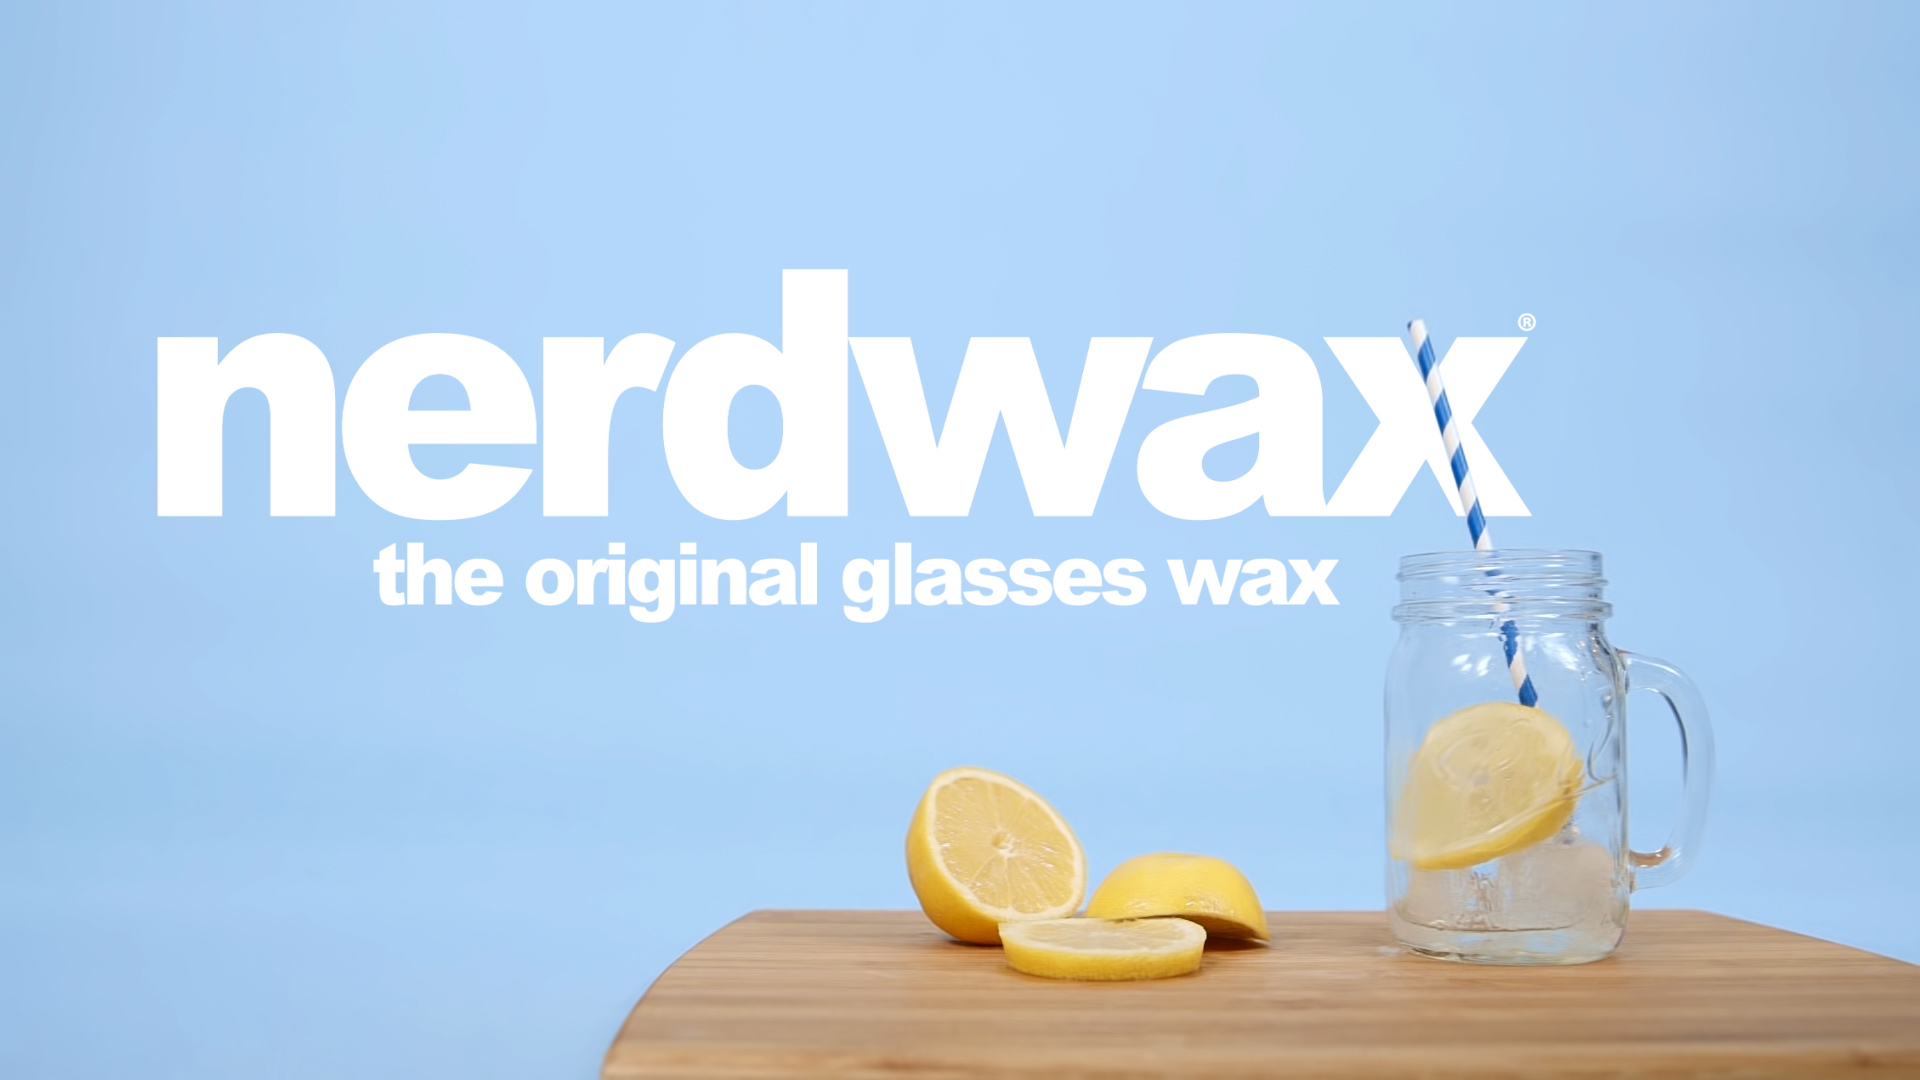 Nerdwax - Lemonade